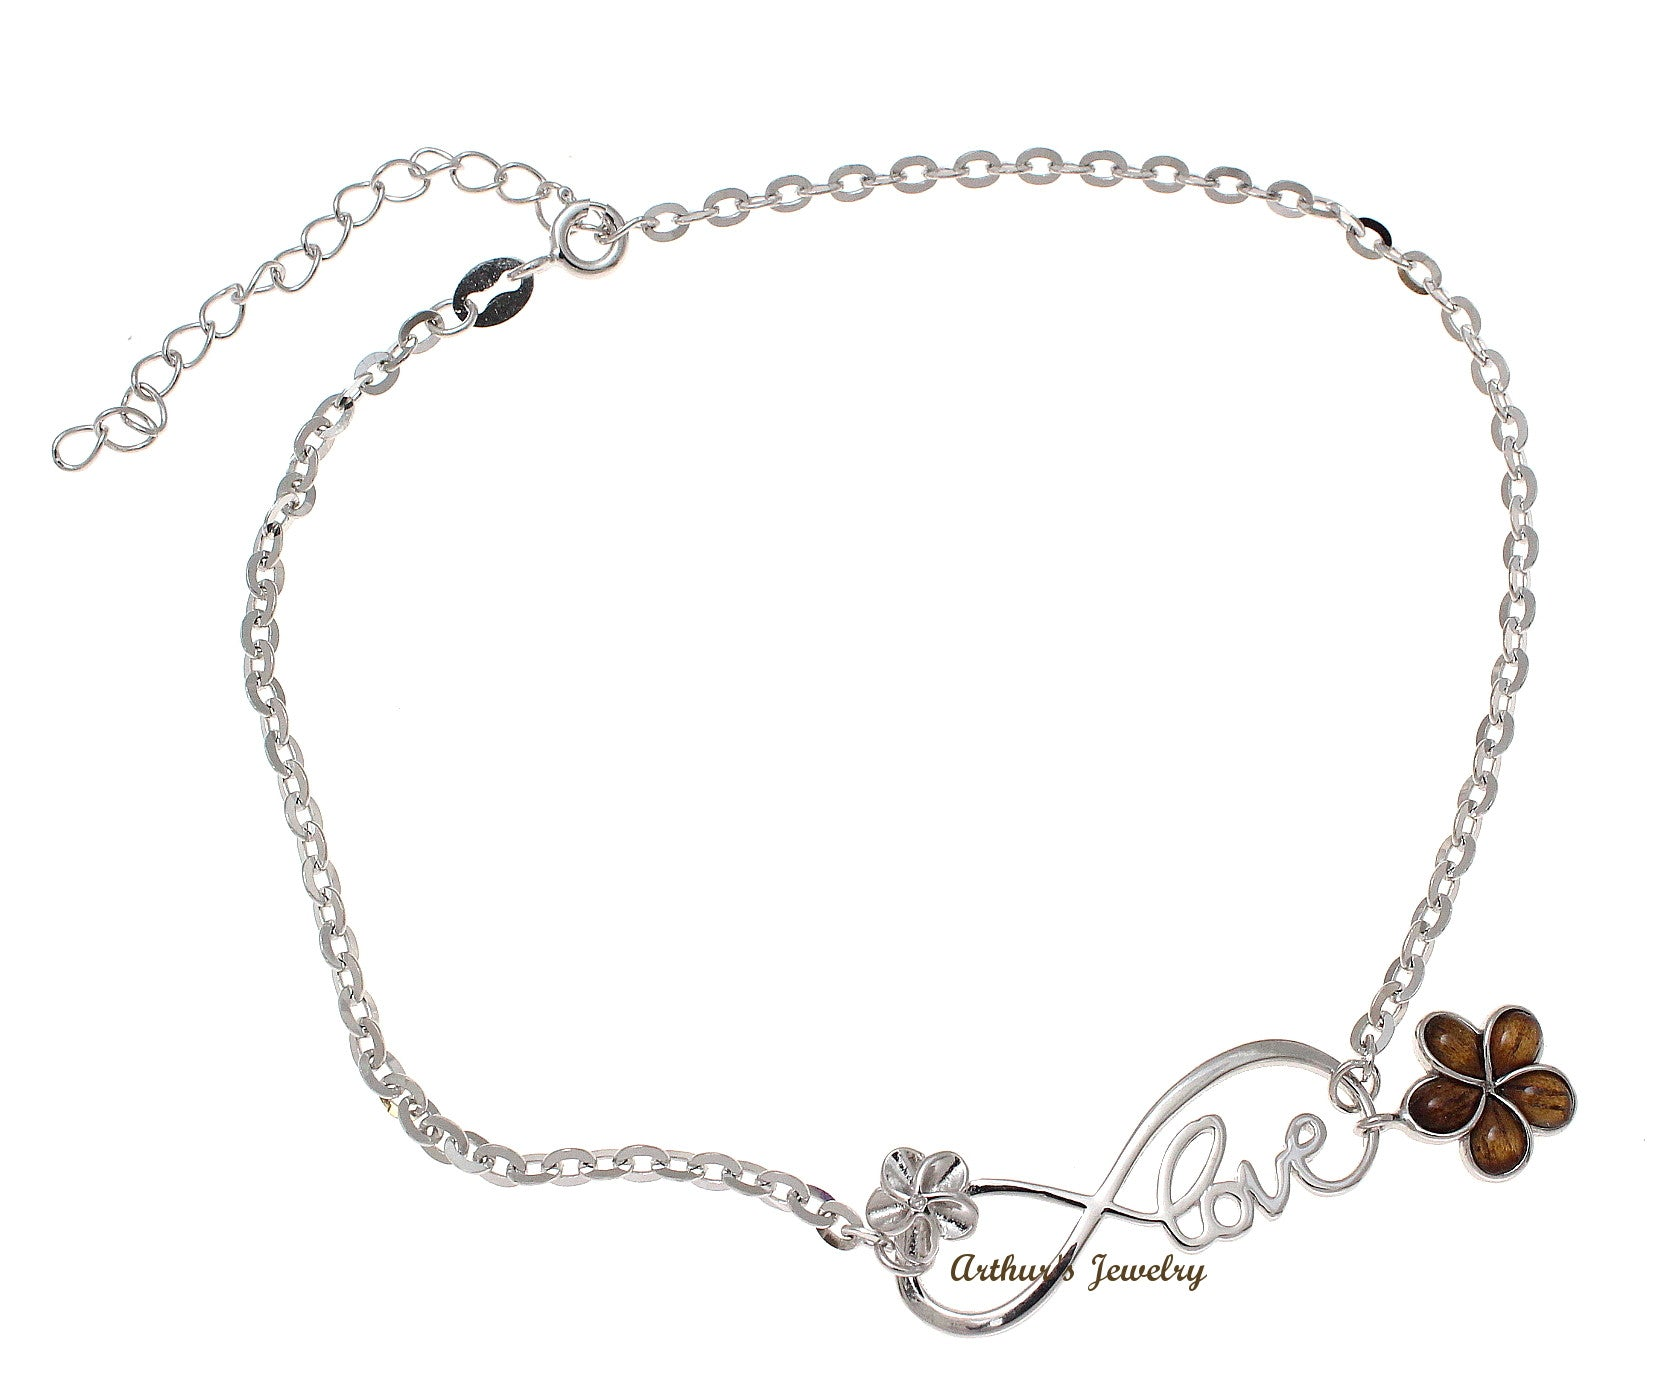 cz anklet all sterling hawaiian plumeria silver chain with foot pin